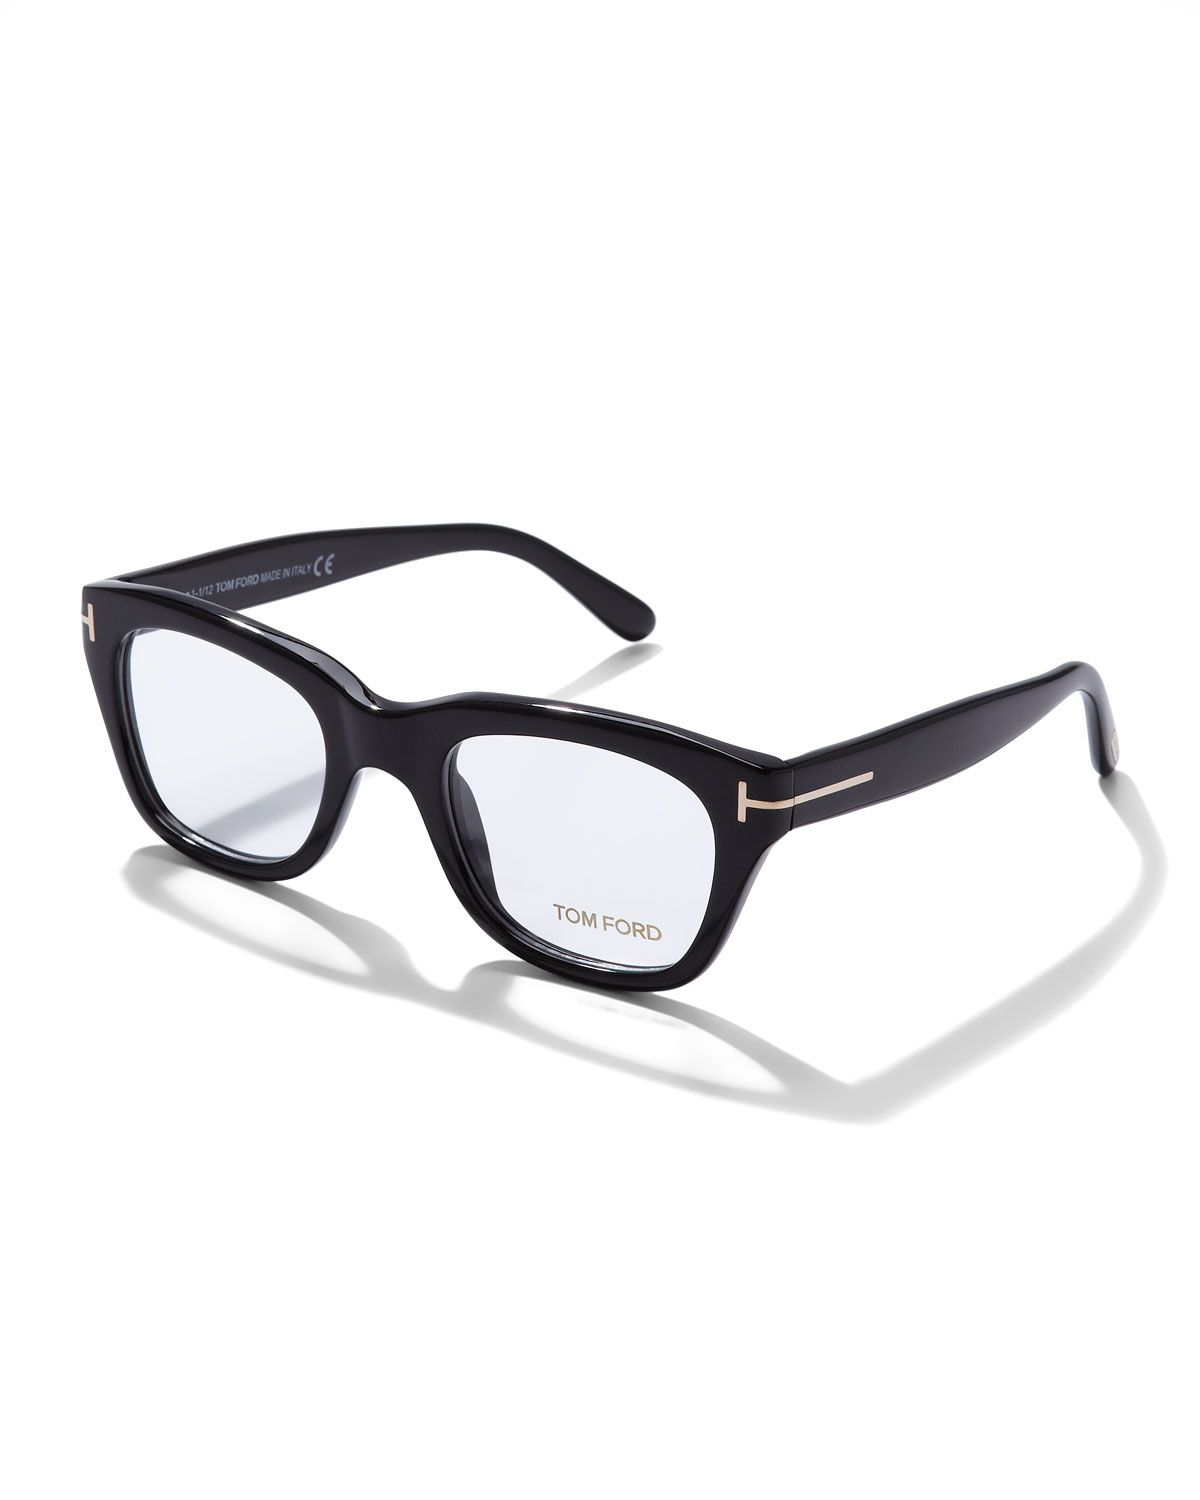 13136b7a50 Large Acetate Frame Fashion Glasses